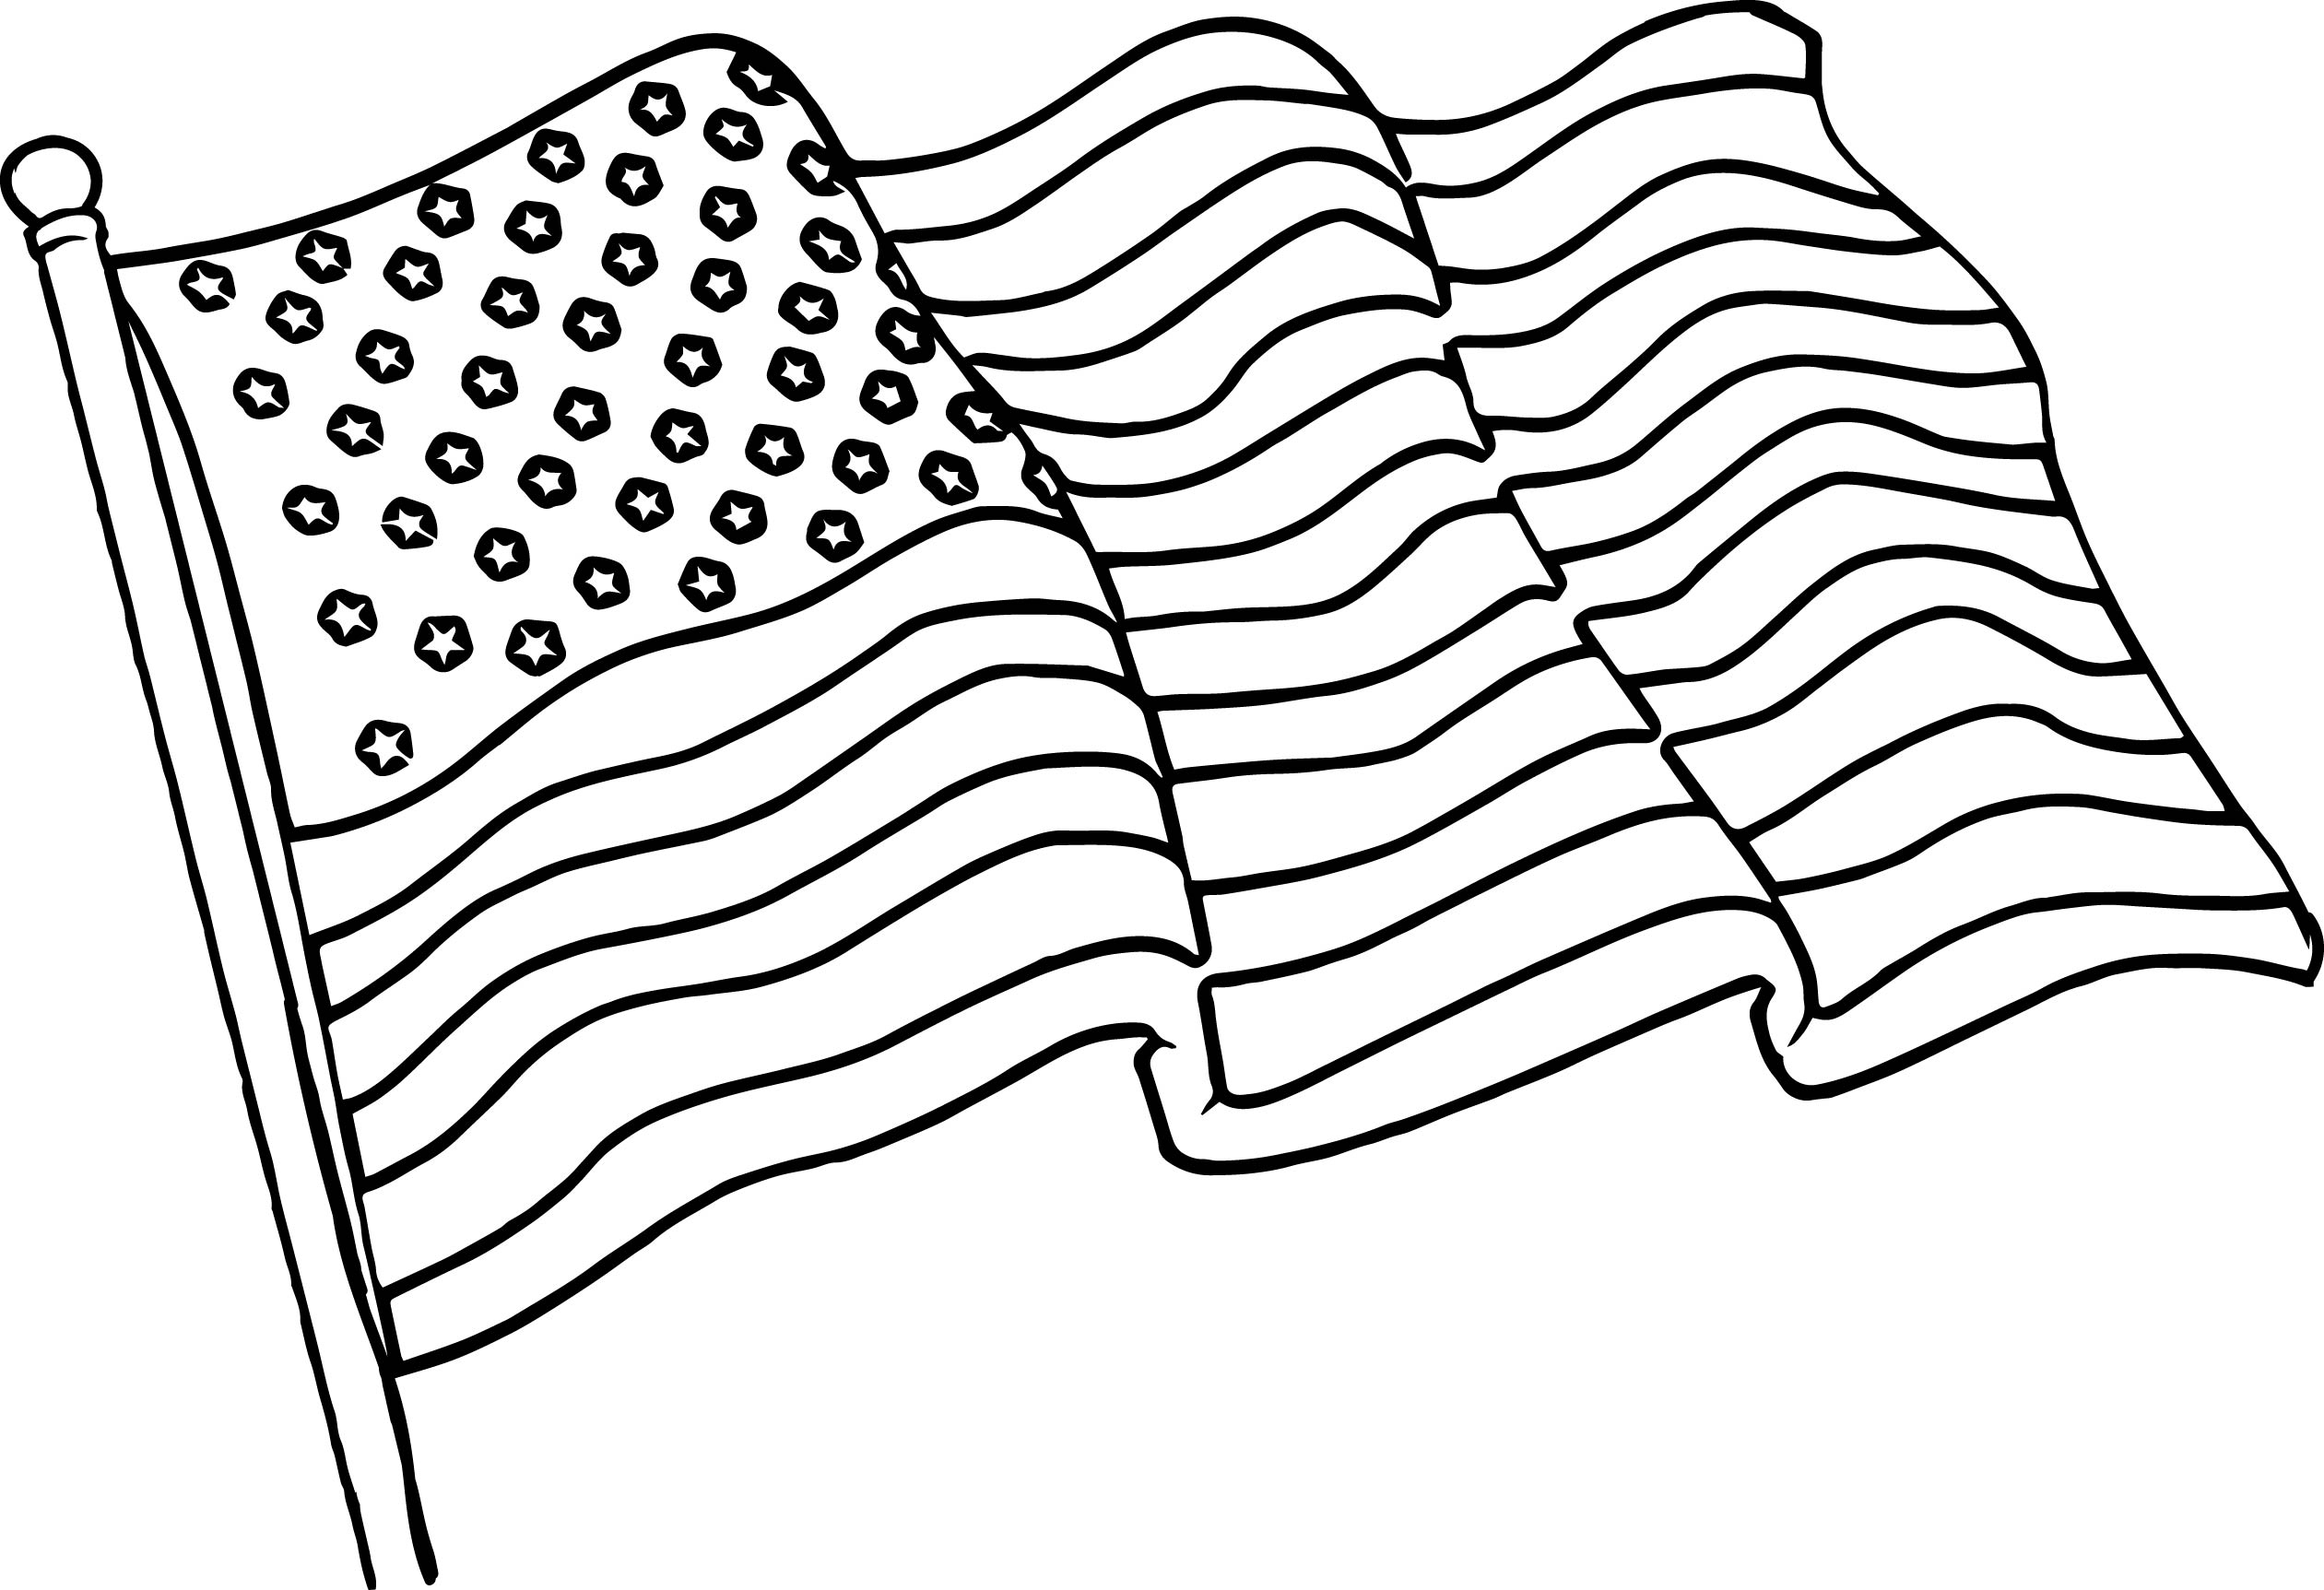 print american flag coloring pages - Flag Coloring Pages